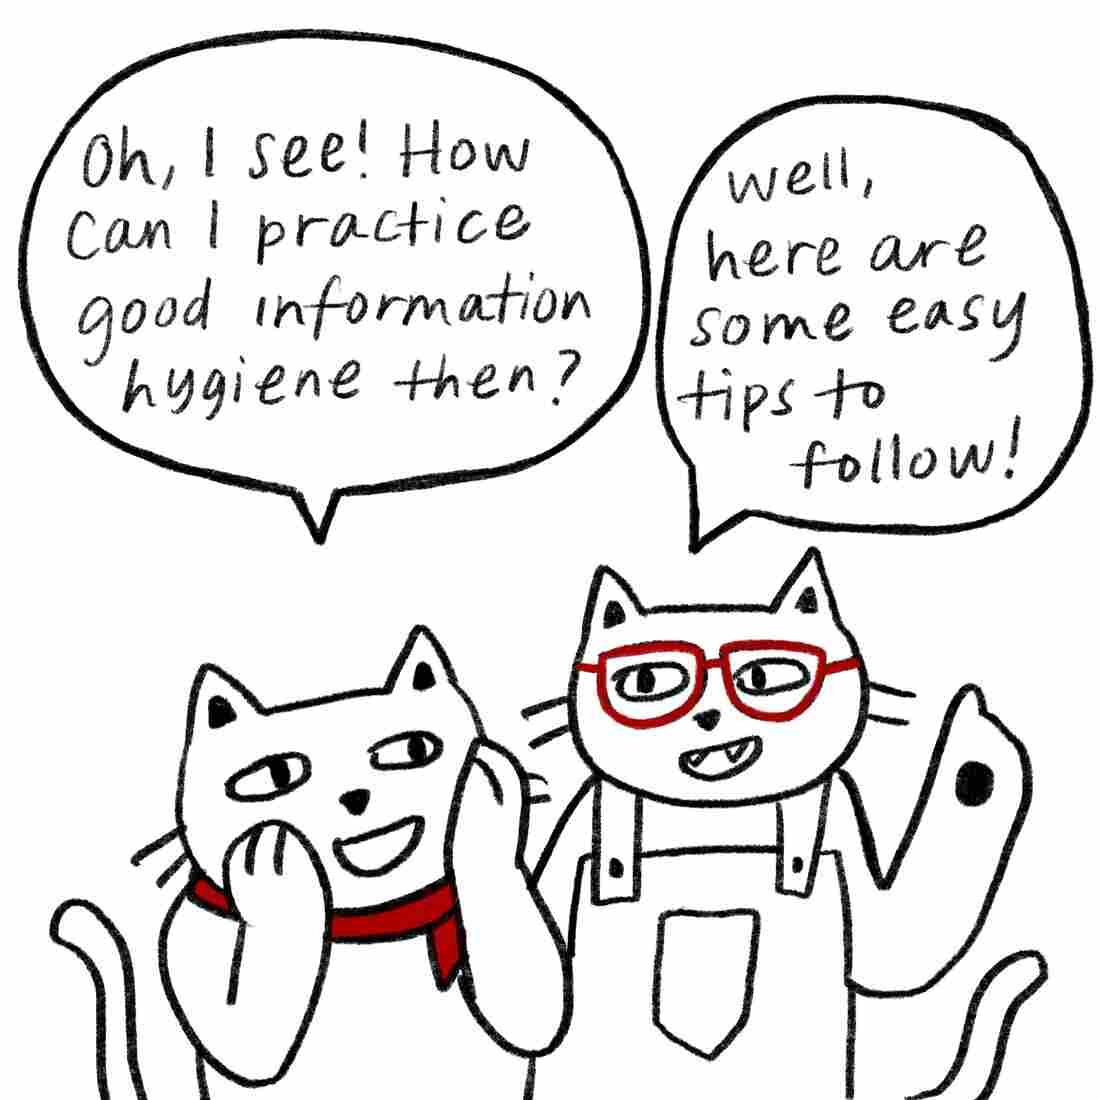 """Oh, I see!"" says Bandanna Cat. ""How can I practice good information hygiene then?"" ""Well, here are some easy tips to follow,"" answers Glasses Cat."